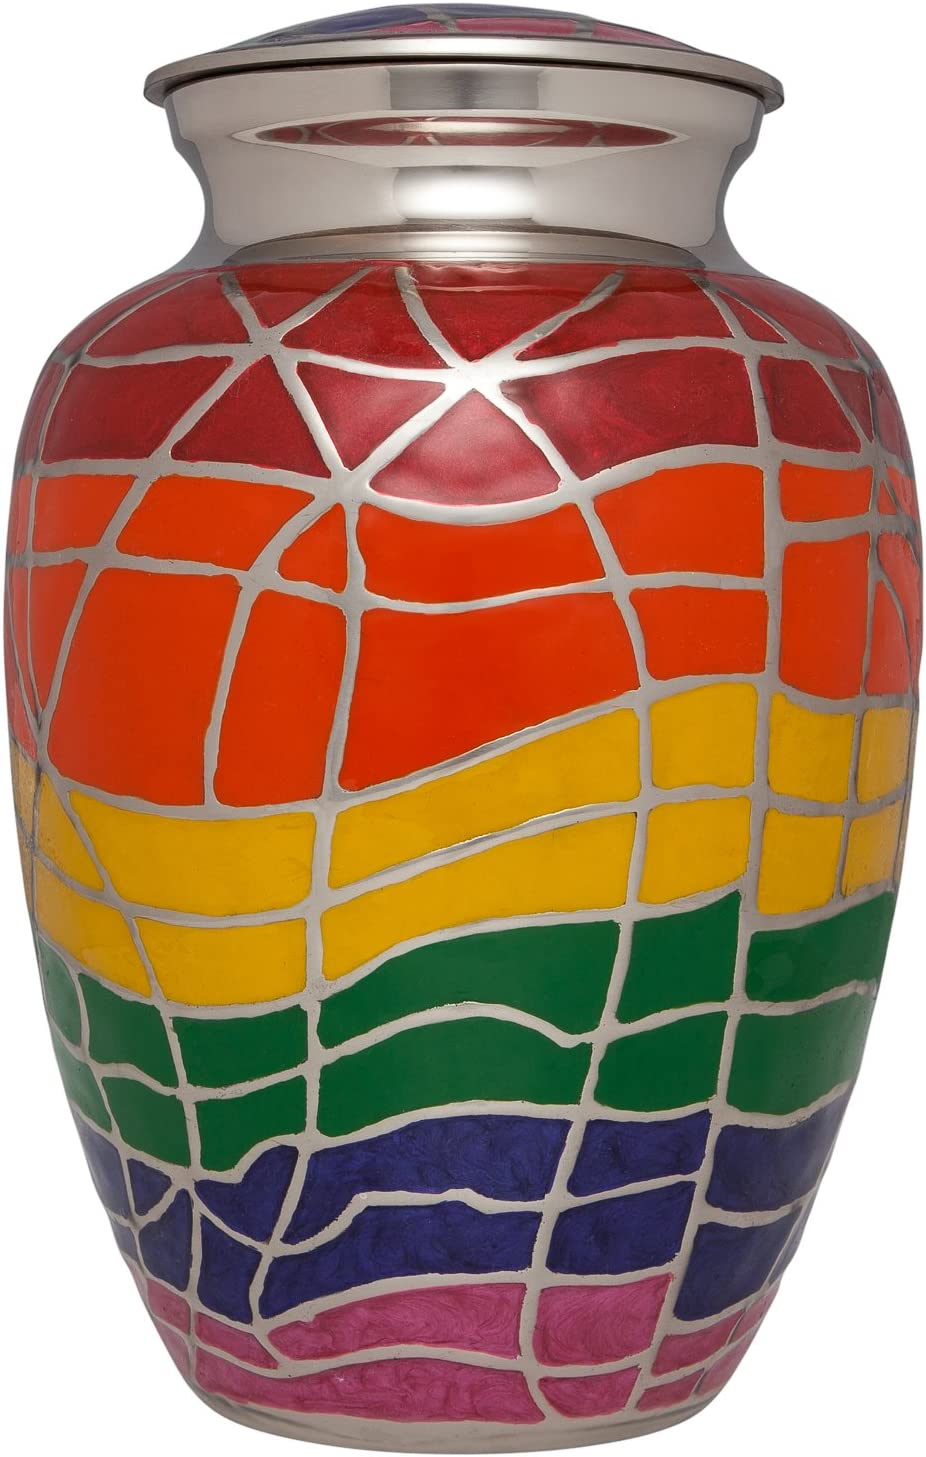 Ansons Urns Rainbow Cremation Urn with Silver Accents - Funeral Urn for Human Ashes - Large Adult Size Burial Urn - 100% Brass - Up to 200 lbs